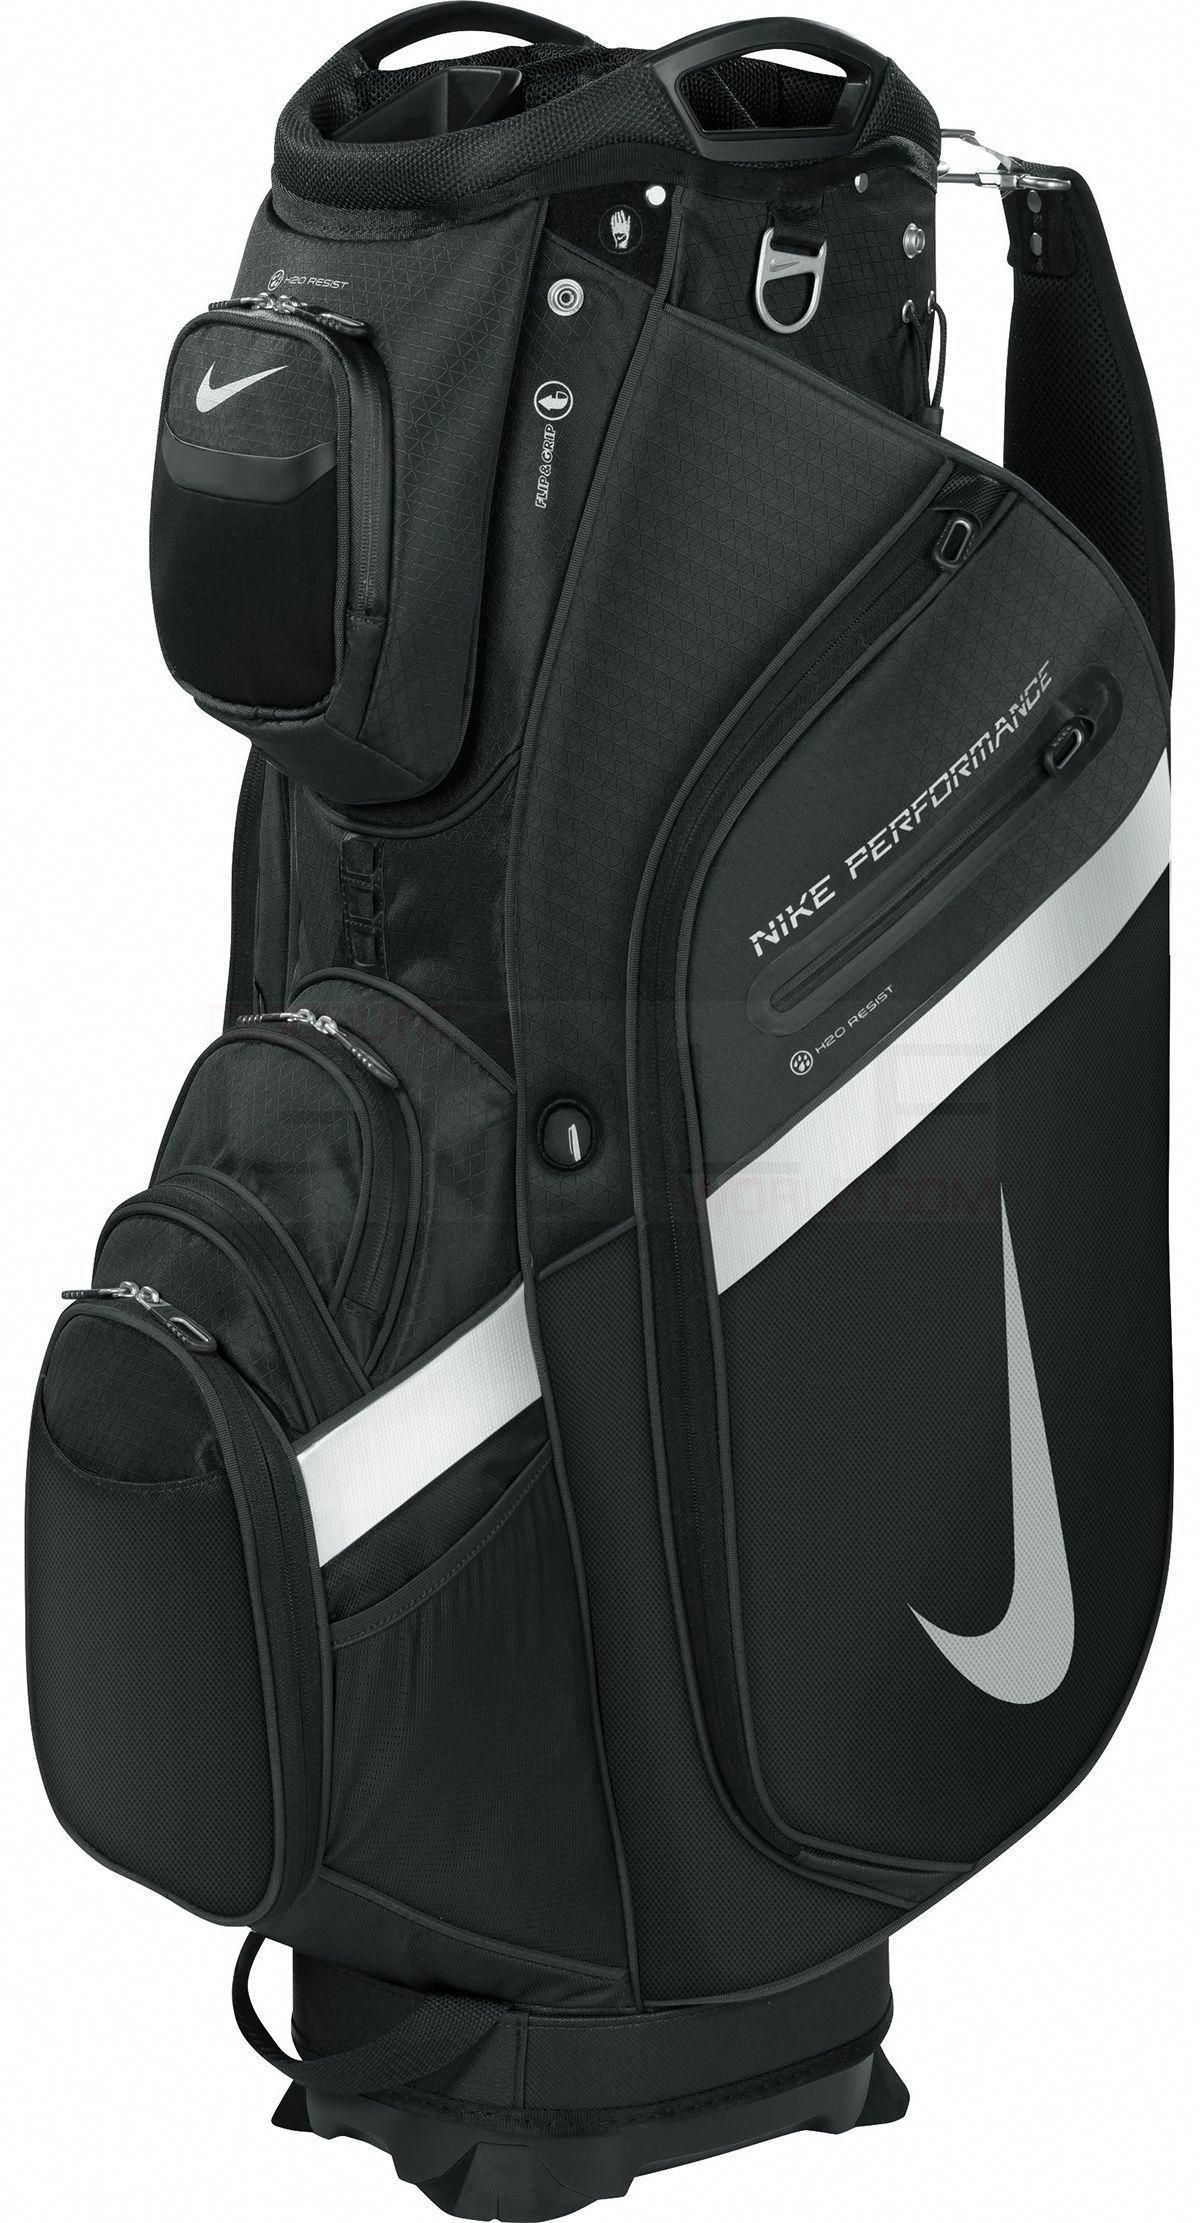 d5a5e57769b6 Nike Performance Cart IV Bag 14-Way Dual-Sided Top